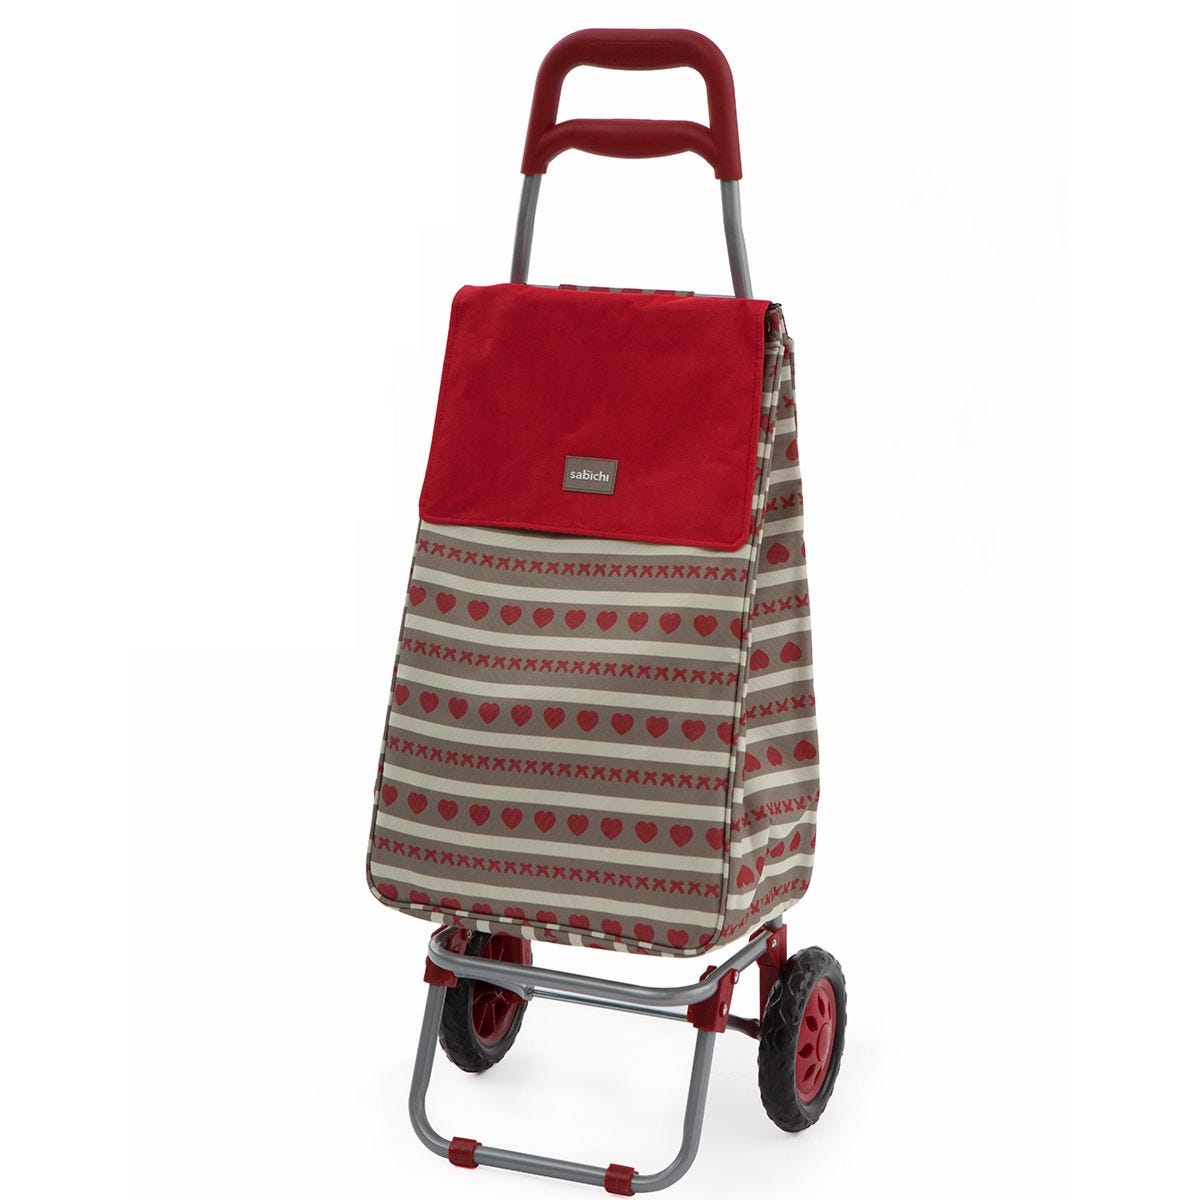 Sabichi Home Bistro Red 2 Wheel Shopping Trolley